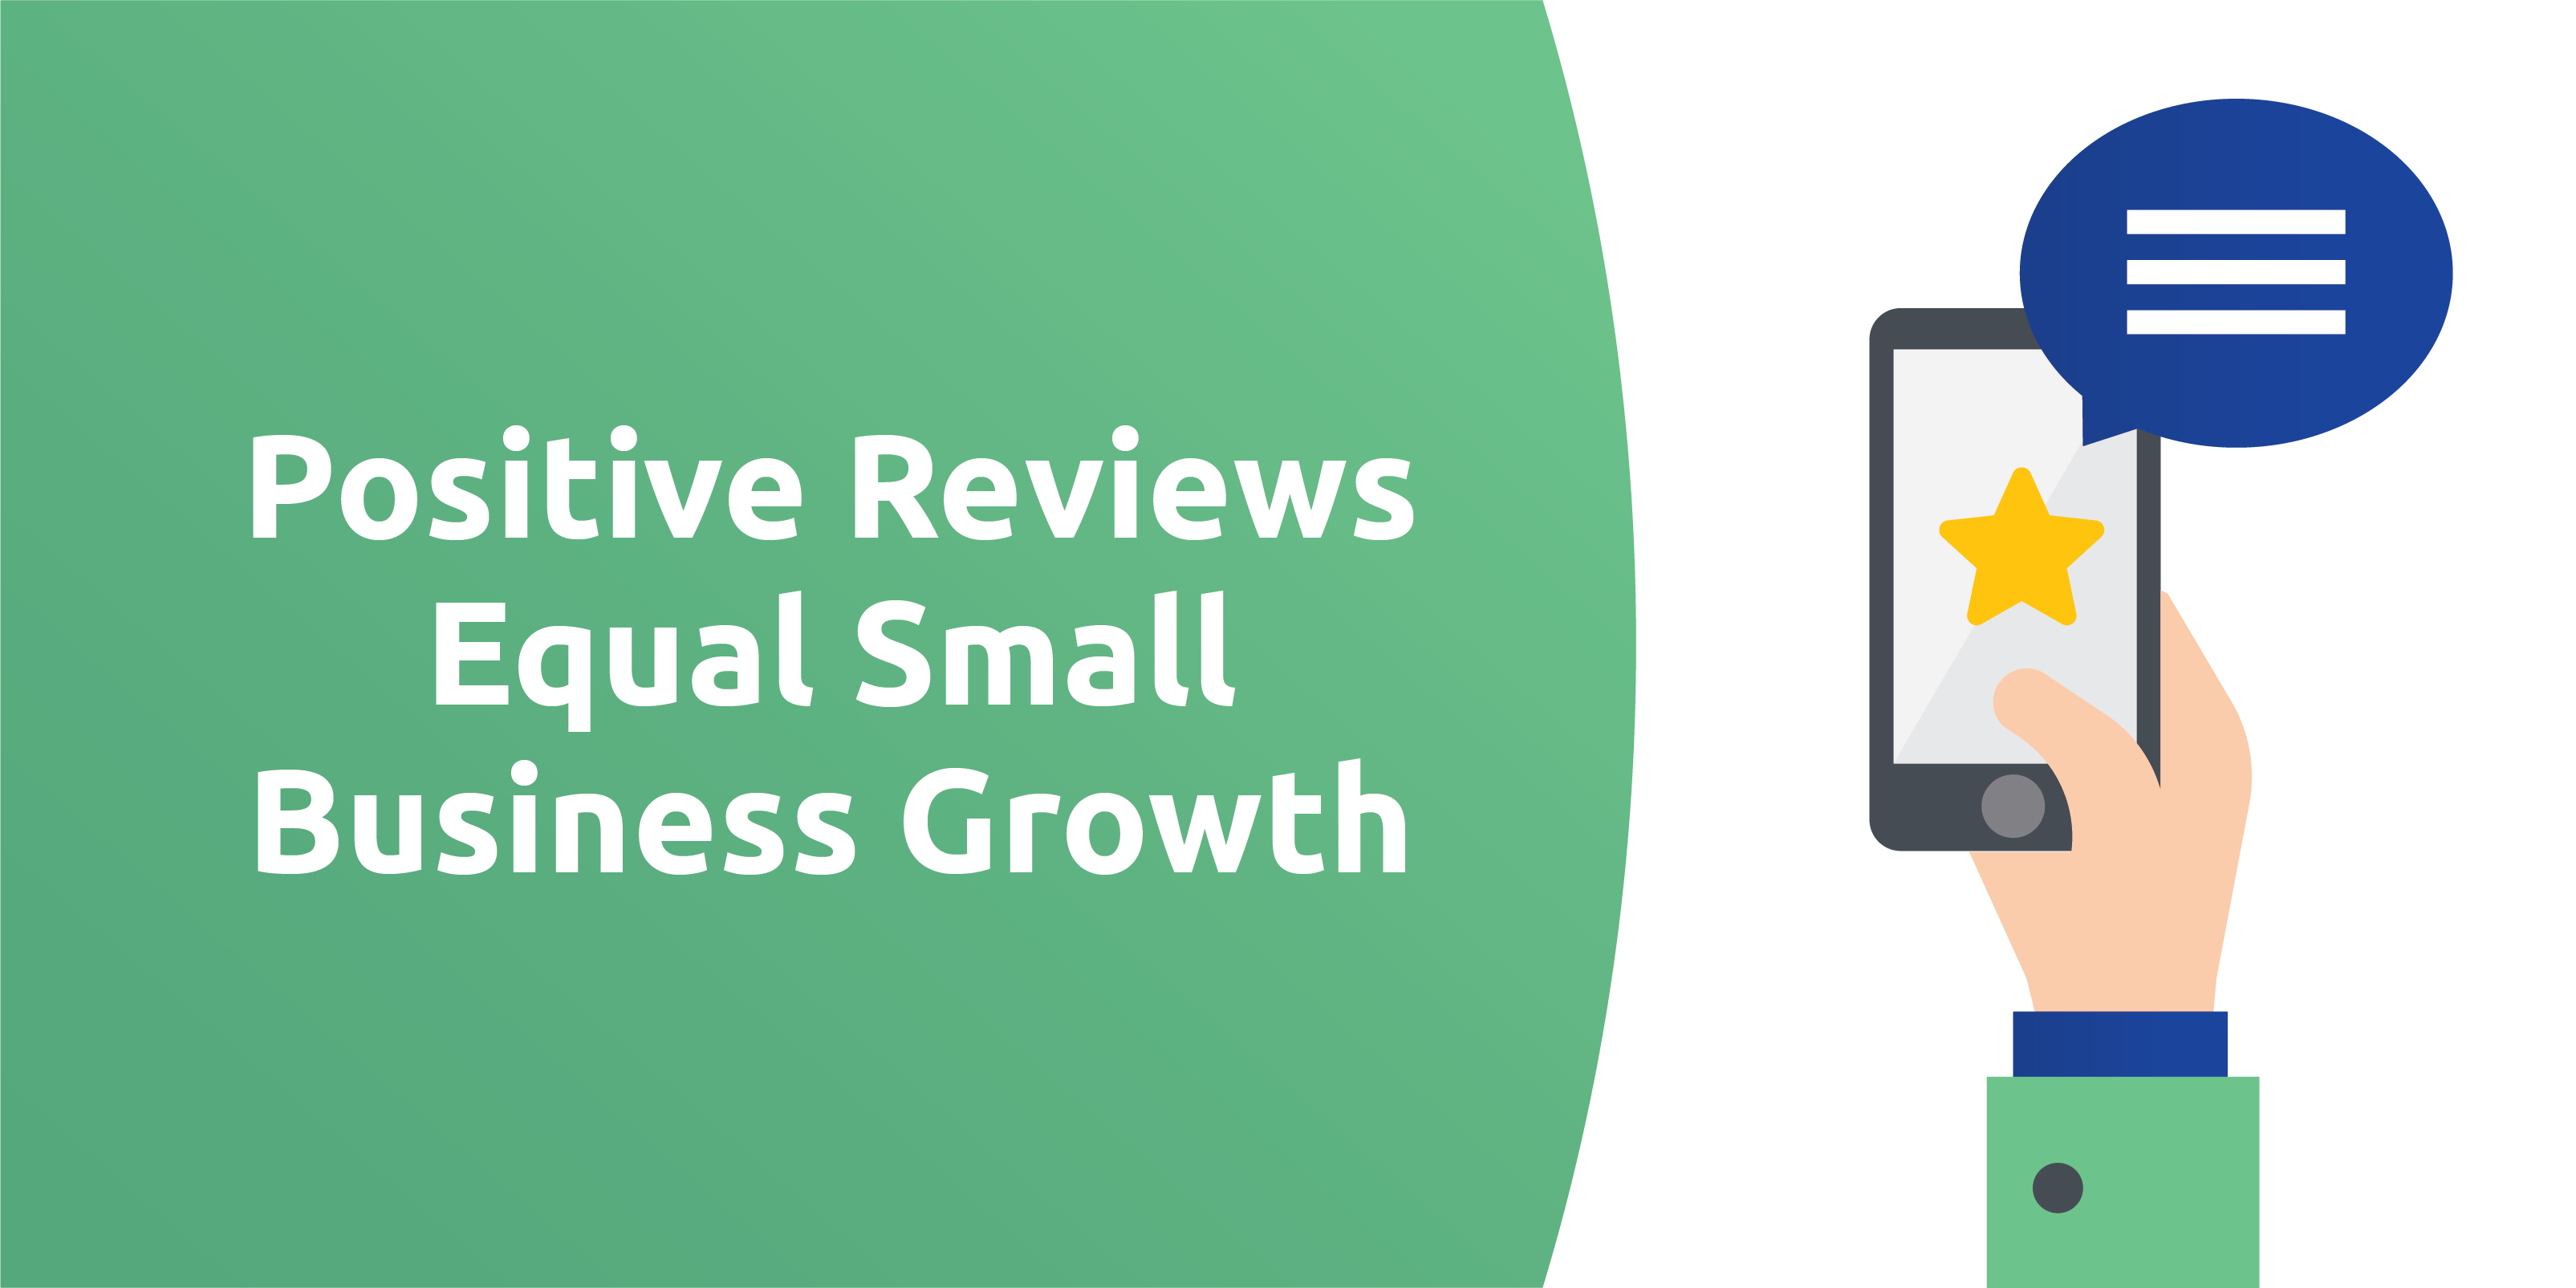 Positive Reviews Equal Small Business Growth